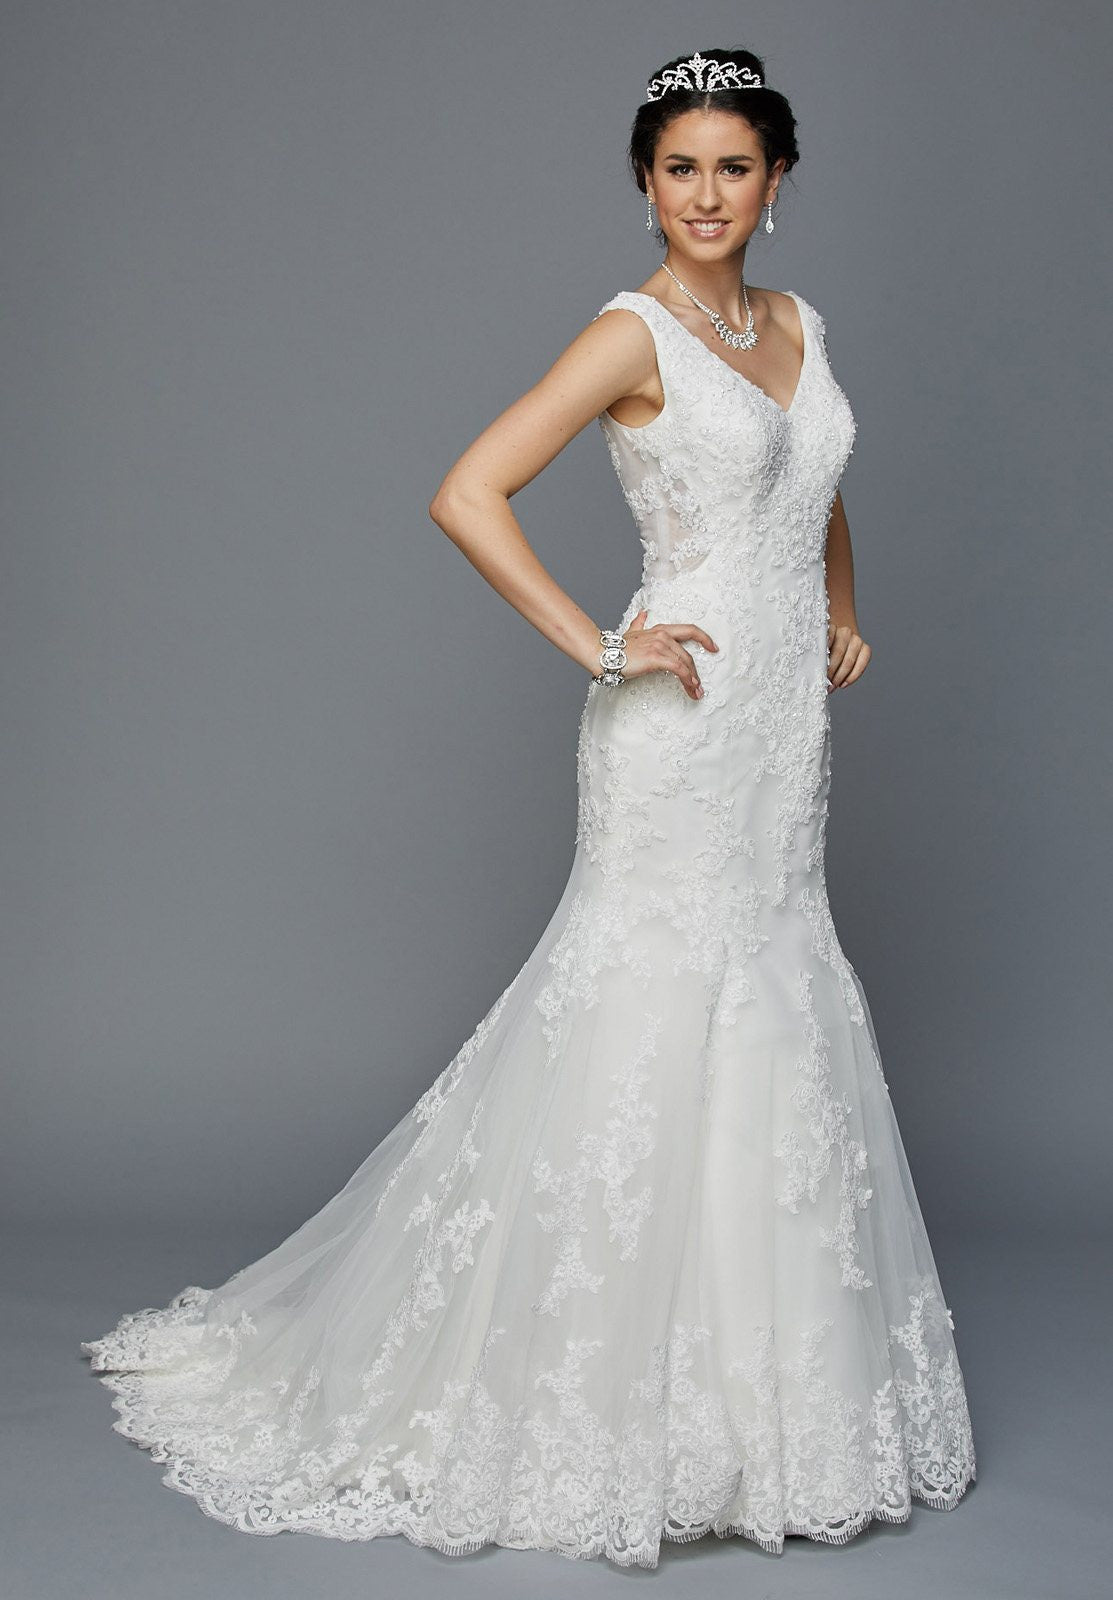 Juliet 356 Fit and Flare V-Neck Sleeveless Wedding Dress White ...